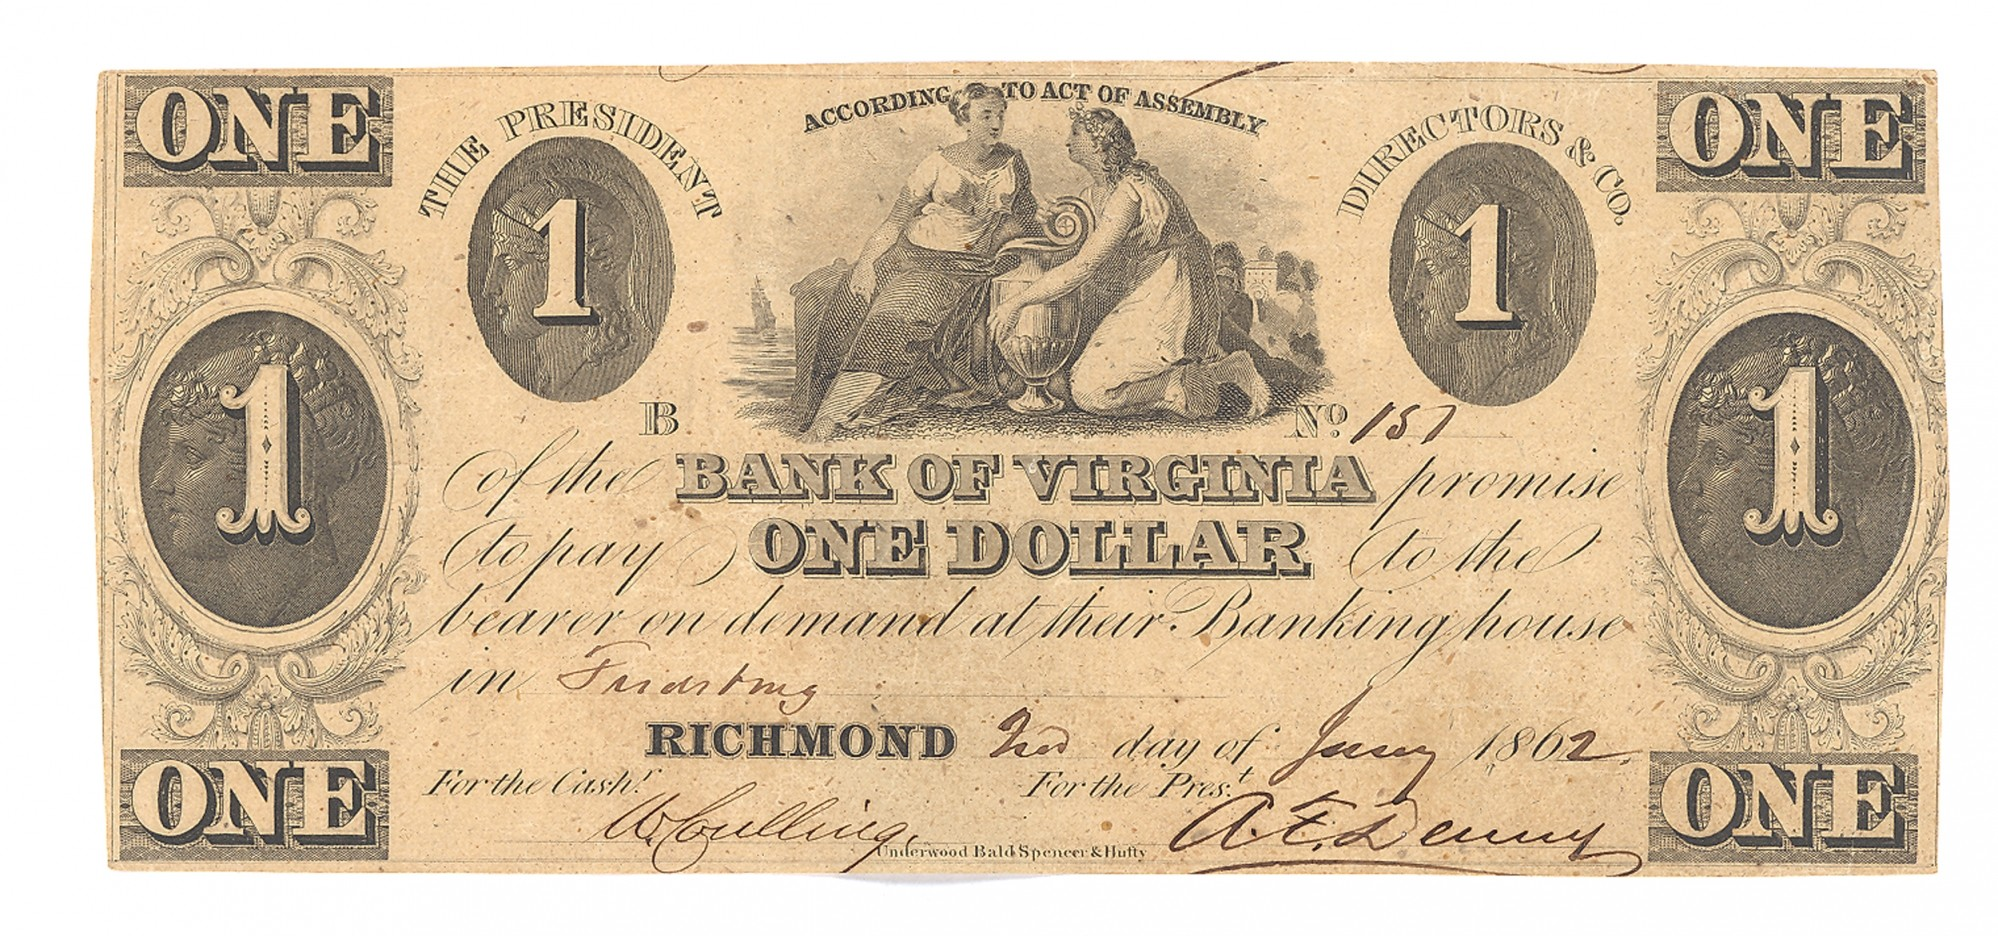 BANK OF VIRGINIA, RICHMOND, VIRGINIA $1 NOTE